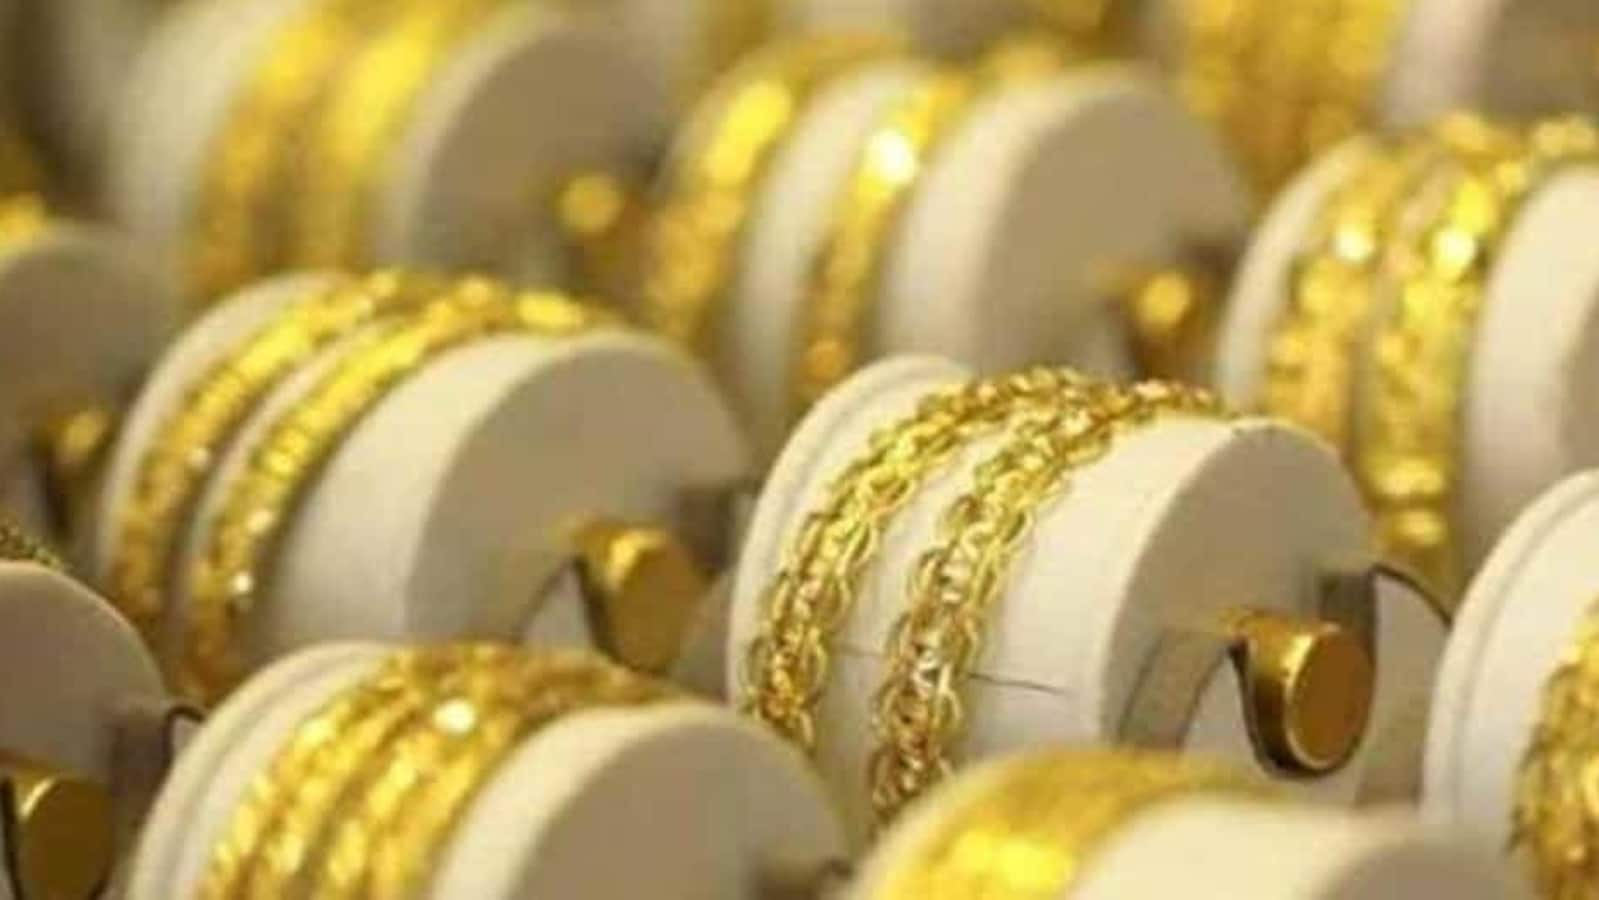 Gold prices down over 20% from highs. Should you invest? - Hindustan Times